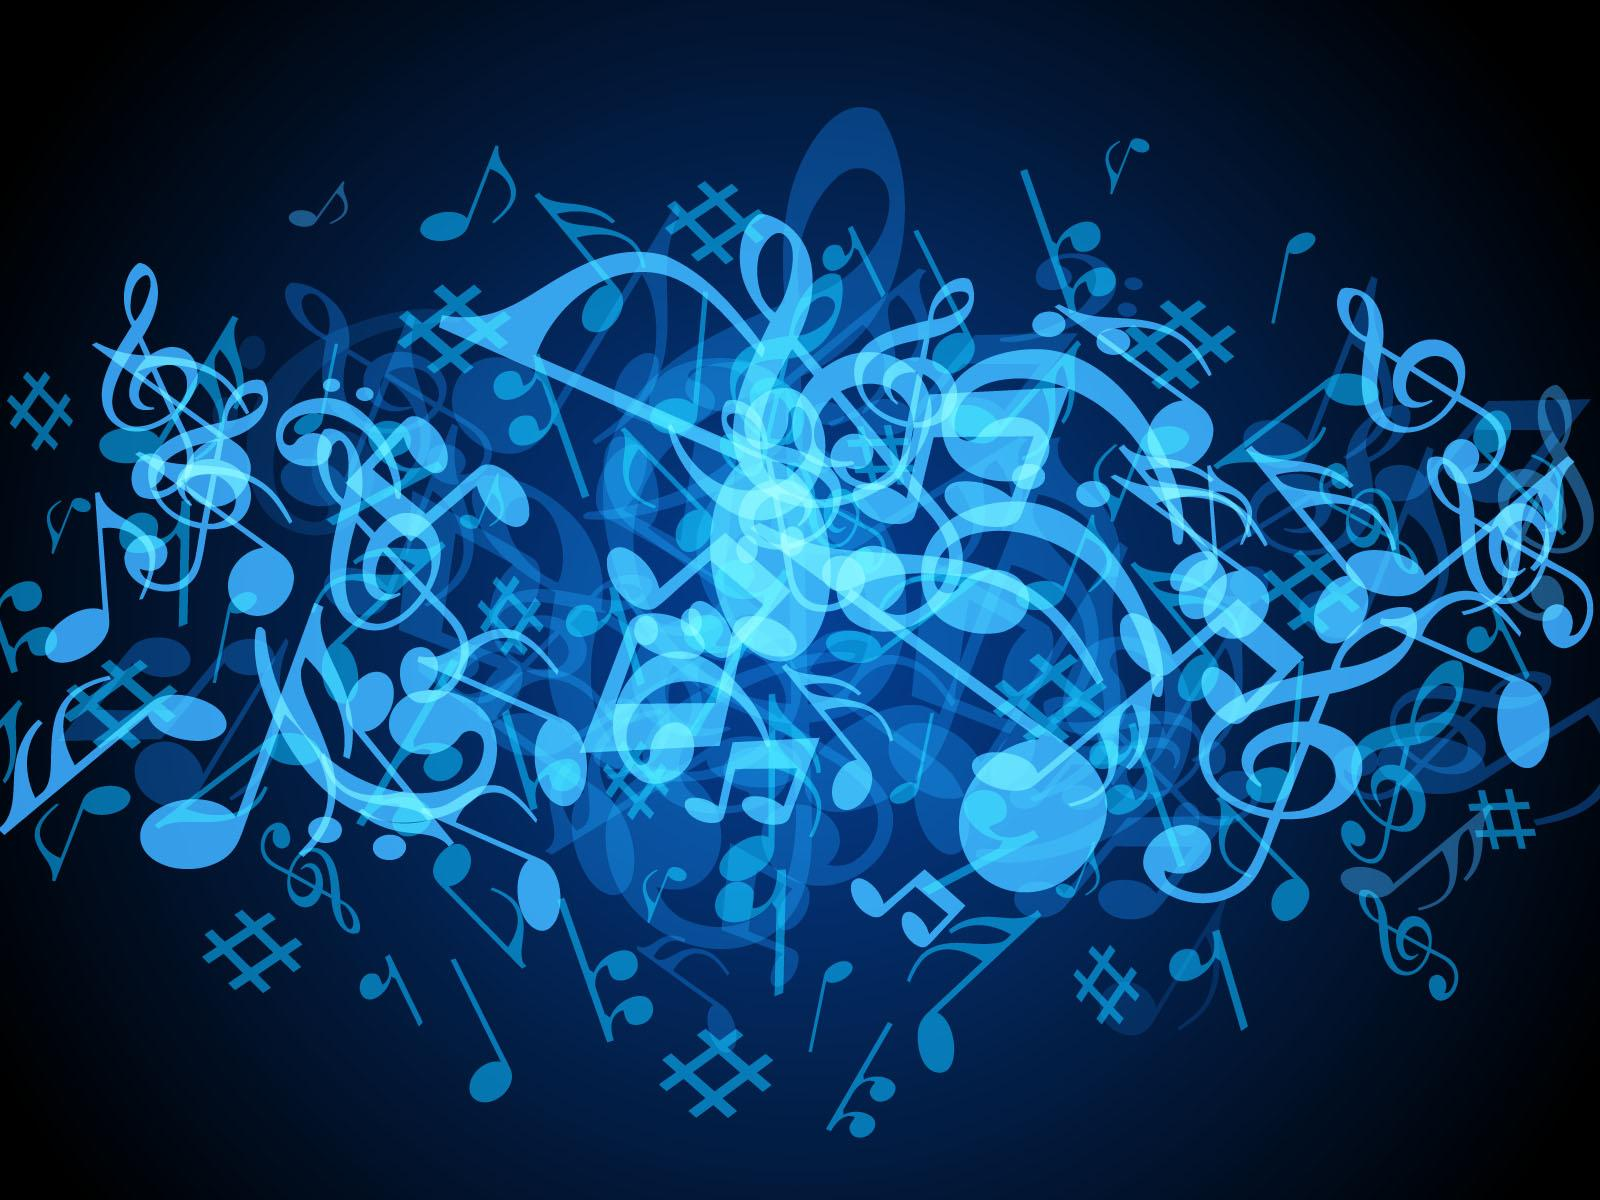 Music Note Backgrounds Pictures 5 HD Wallpapers